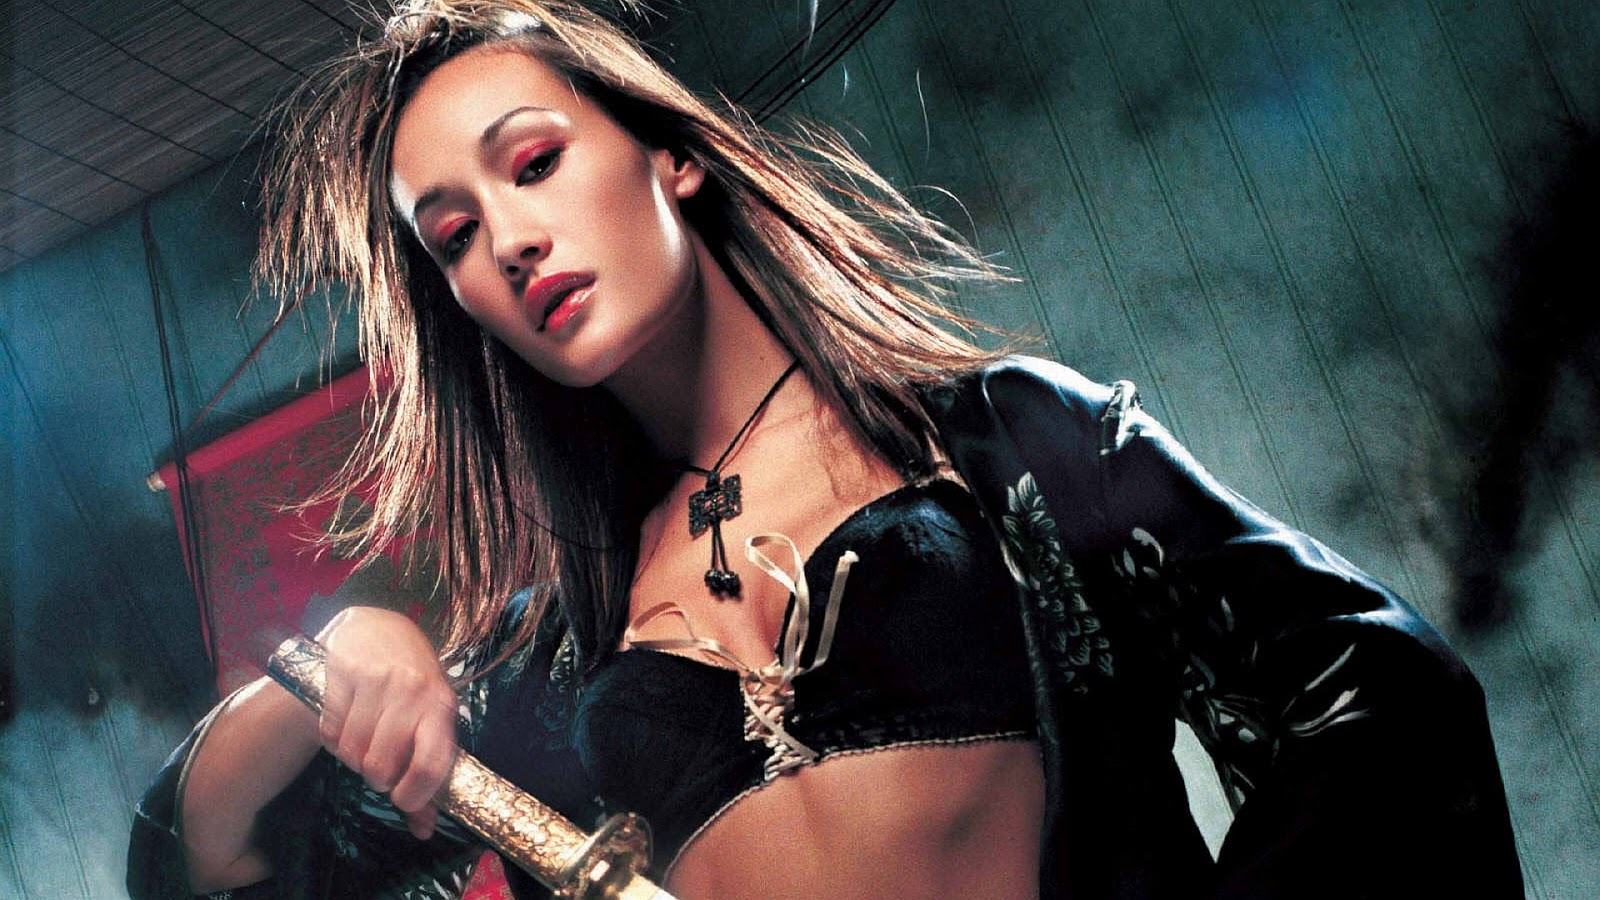 Korean Girl Wallpaper Desktop Maggie Q Wallpapers Most Beautiful Places In The World